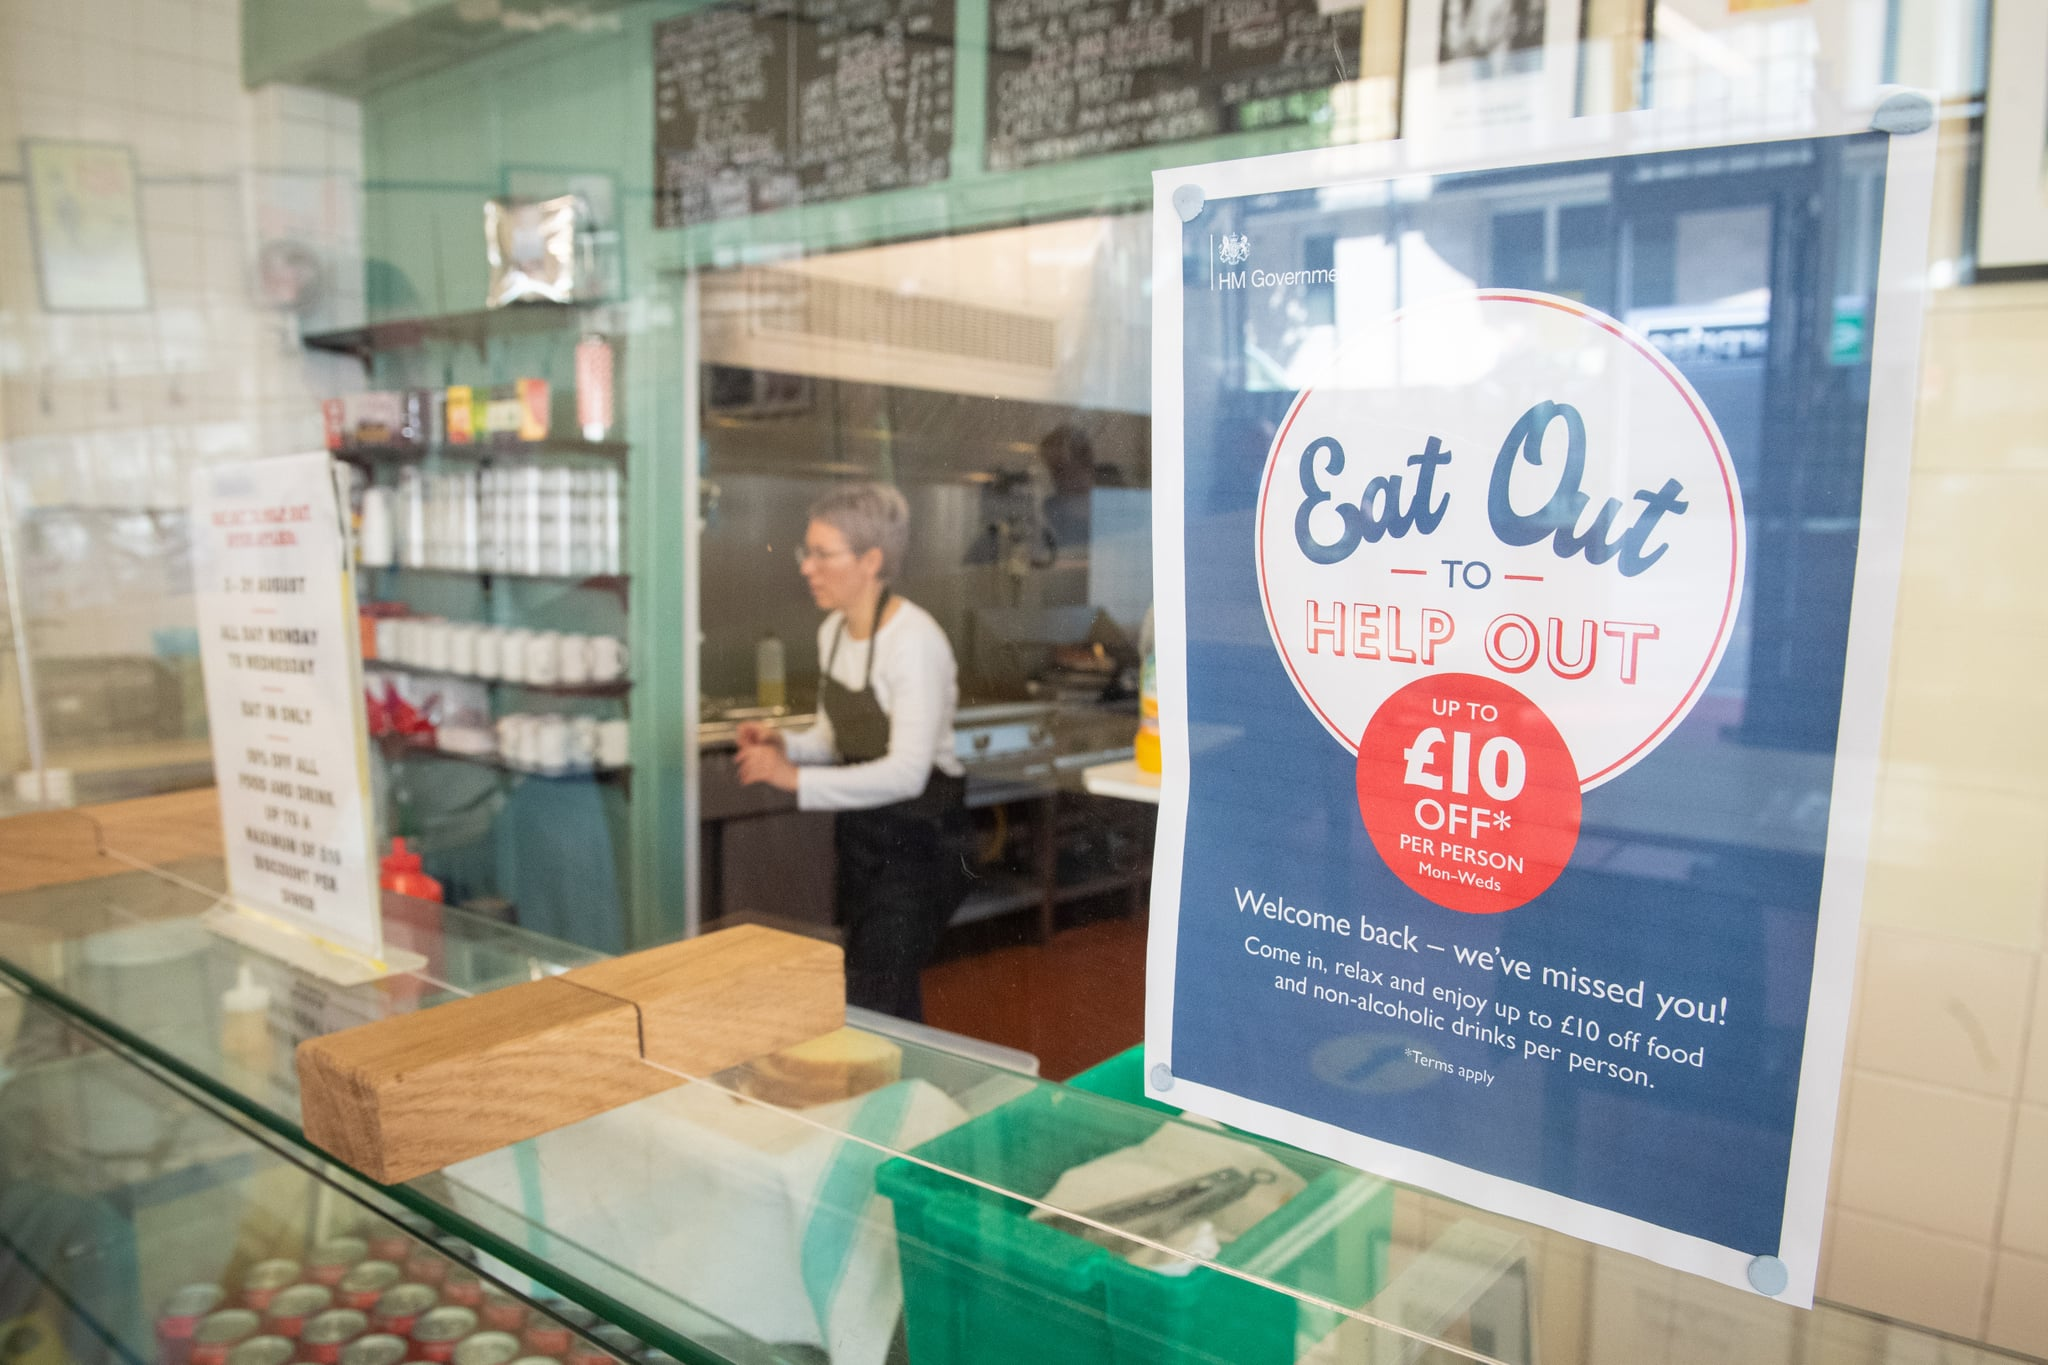 Signage for the 'Eat Out to Help Out' scheme, at the Regency Cafe, in London, one of the participating restaurants where diners will be able to enjoy half-price meals, starting on Monday as the Government kick-starts its August scheme aimed at boosting restaurant and pub trade following the lockdown. (Photo by Dominic Lipinski/PA Images via Getty Images)